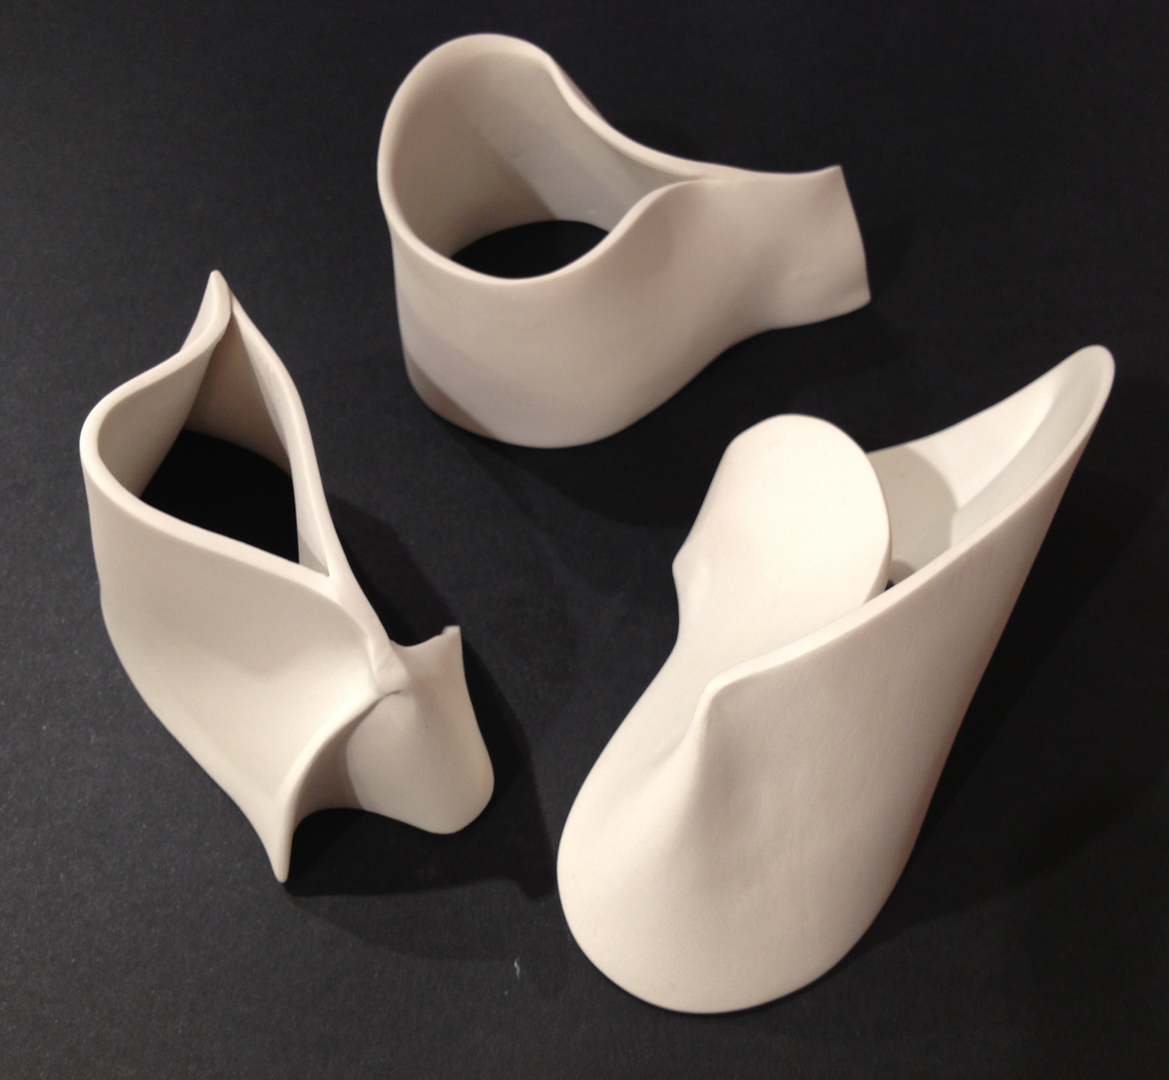 Architectural Residue(s): Folding Forms